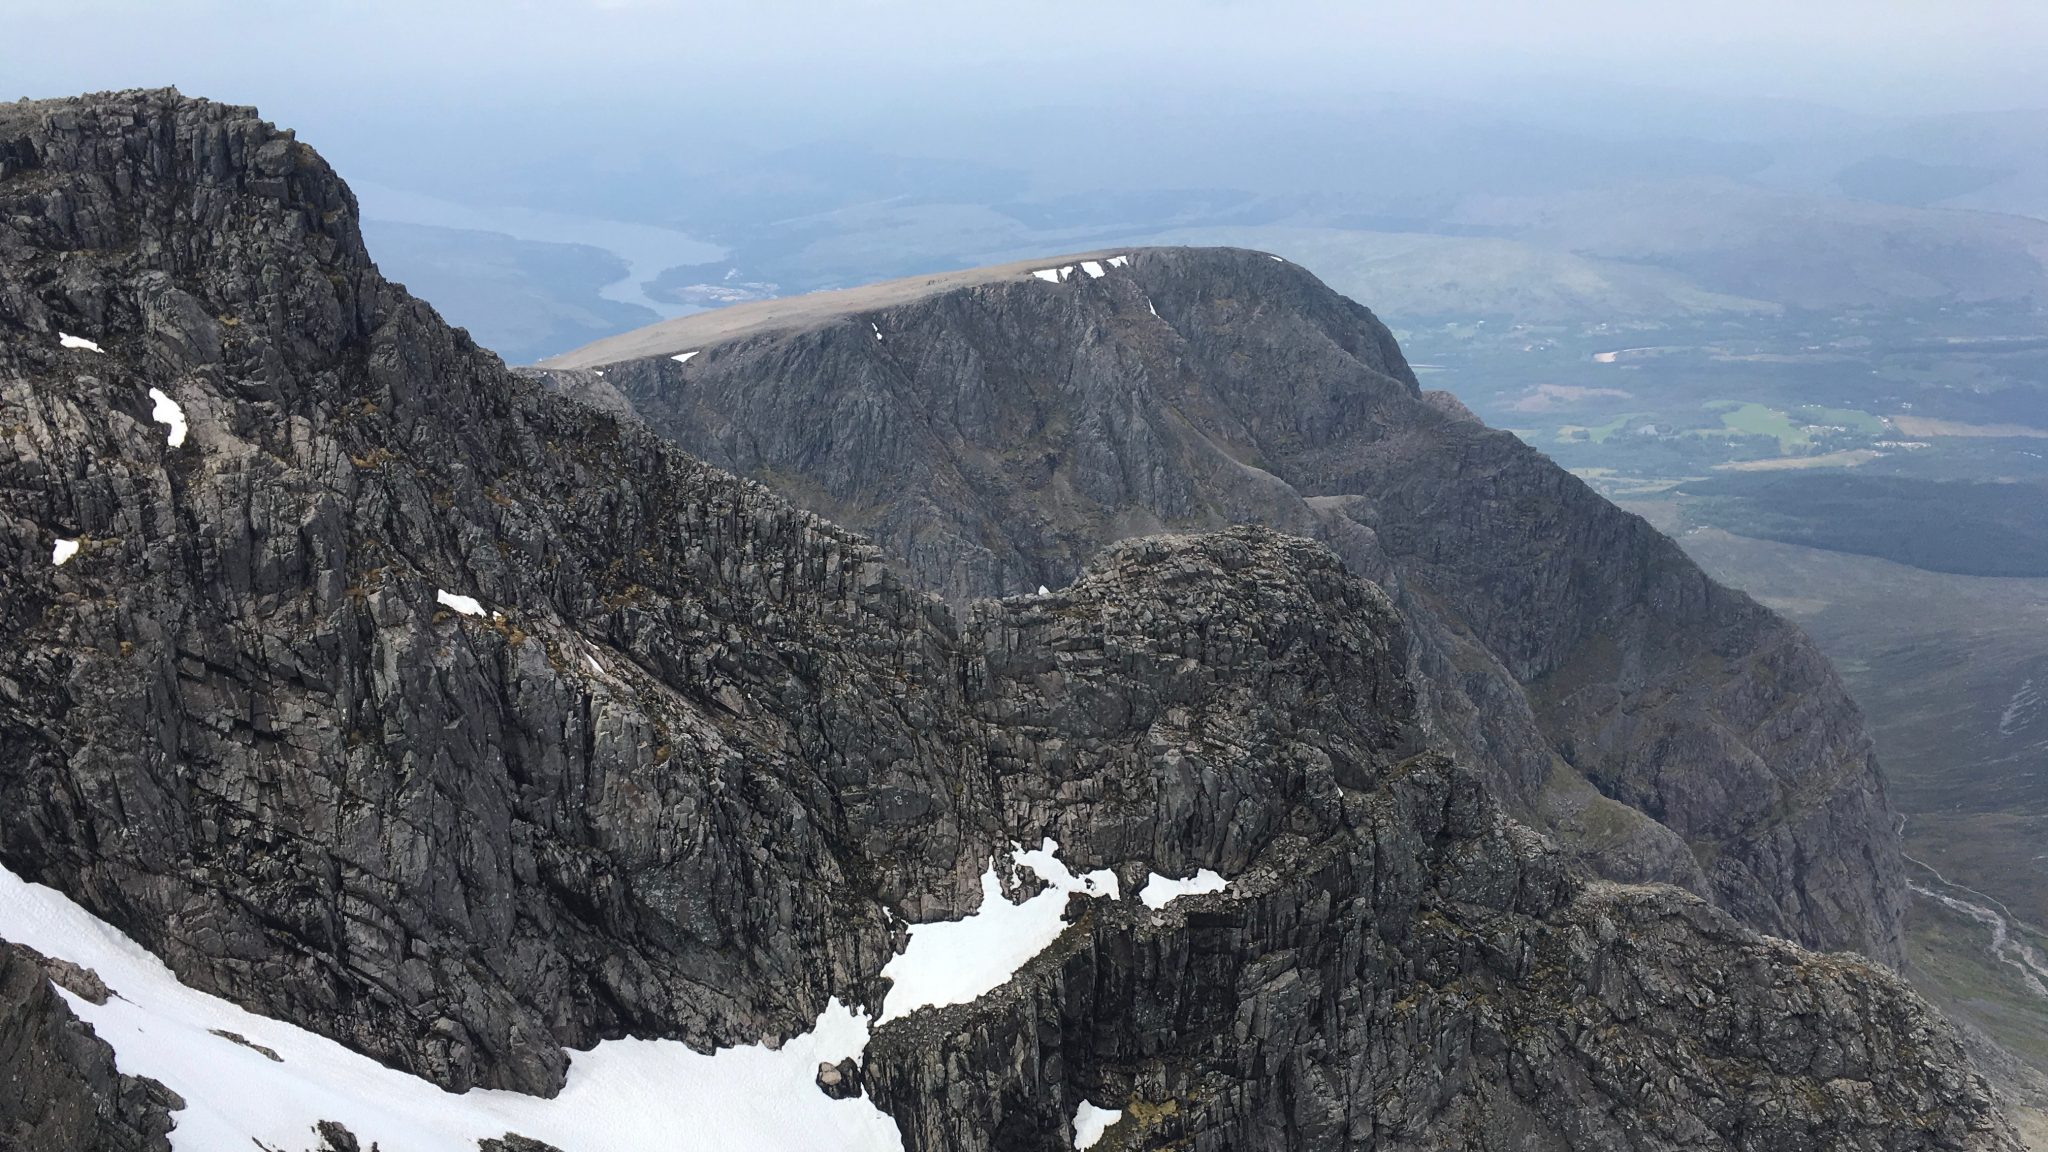 The spectacular profile of Tower Ridge and Tower Gap seen from the summit of Ben Nevis on a guided scrambling day